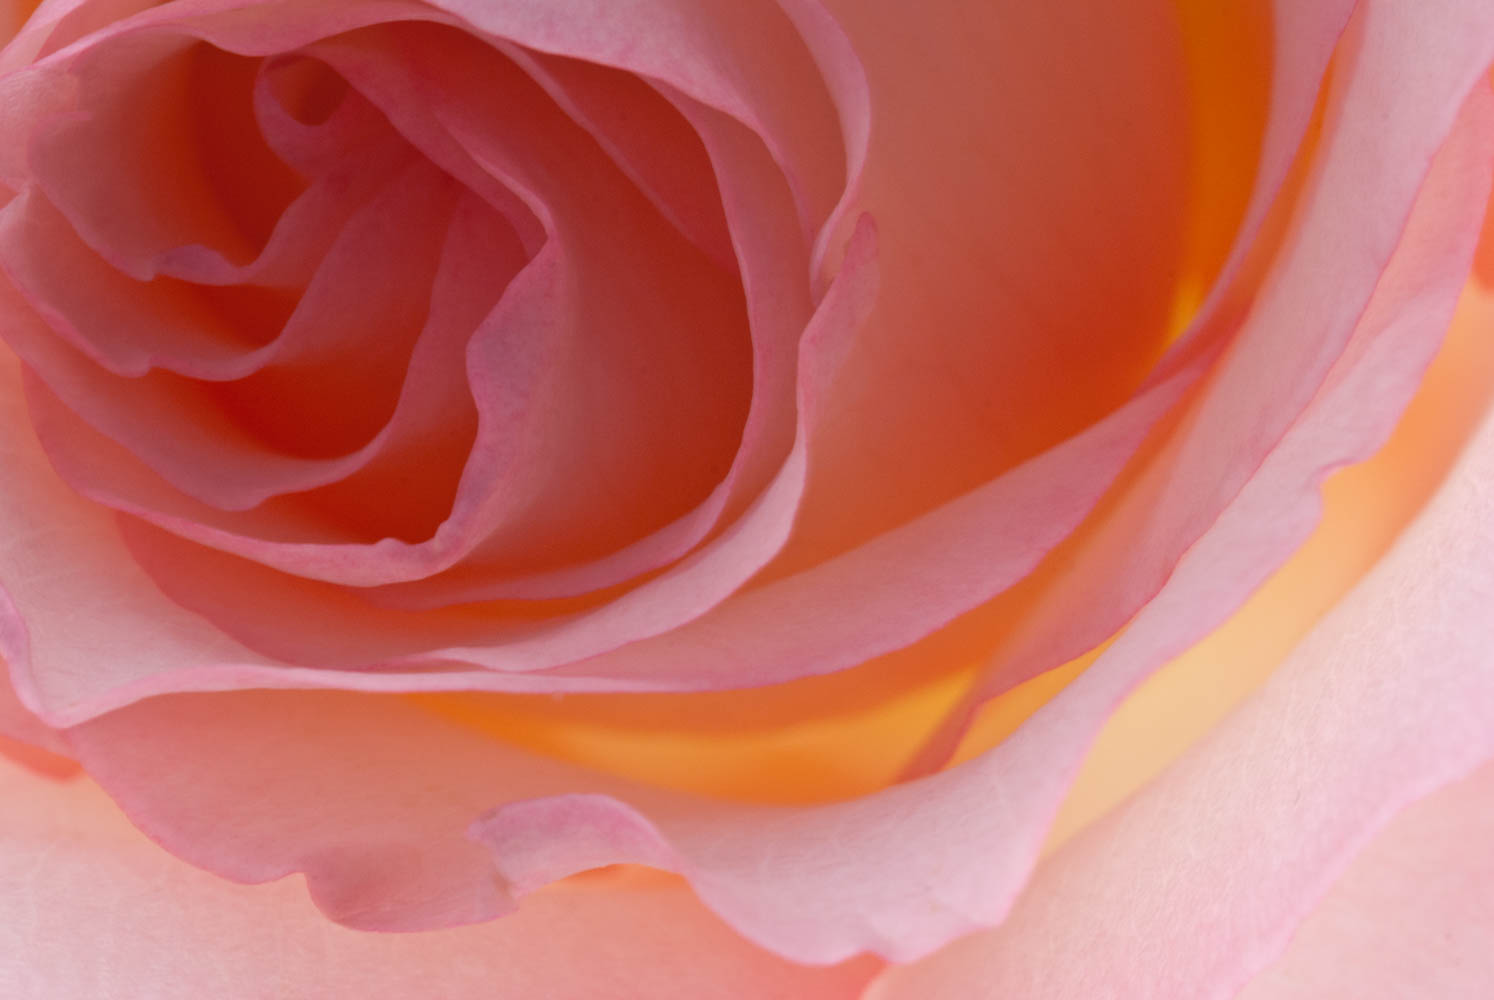 Peach White Rose 4-2.jpg